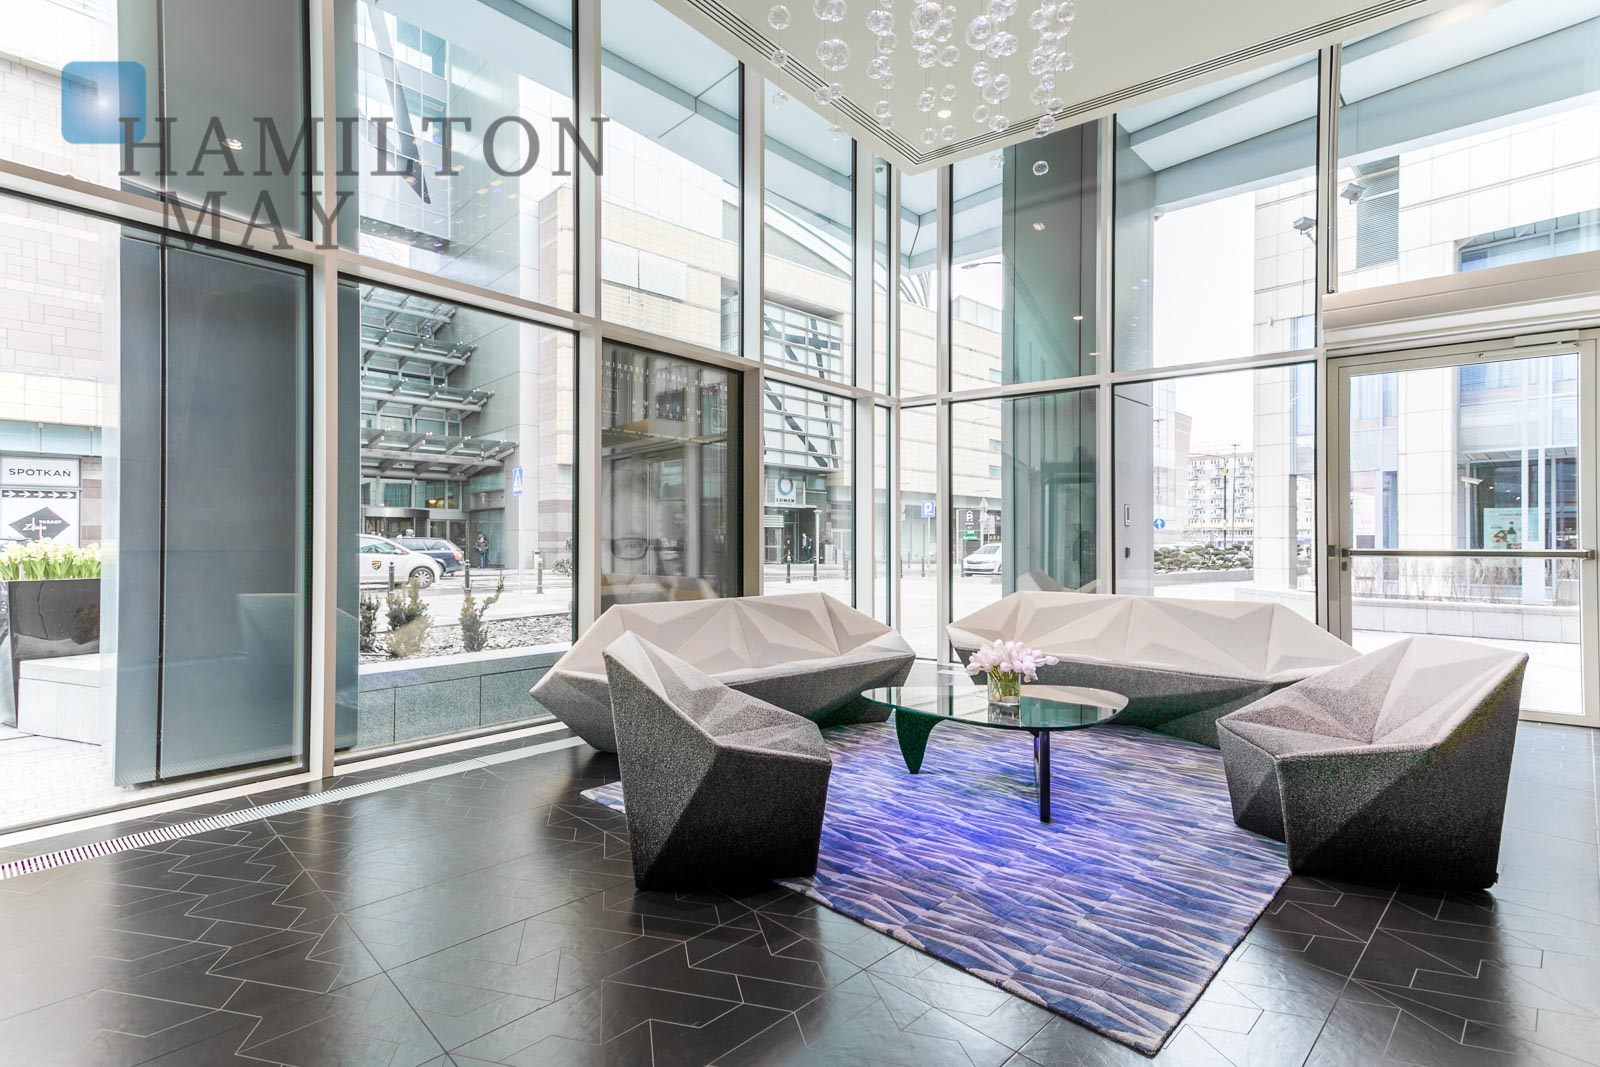 Elegant, stylish apartment with a view of the Palace of Culture in the prestigious Złota 44 investment Warsaw for sale